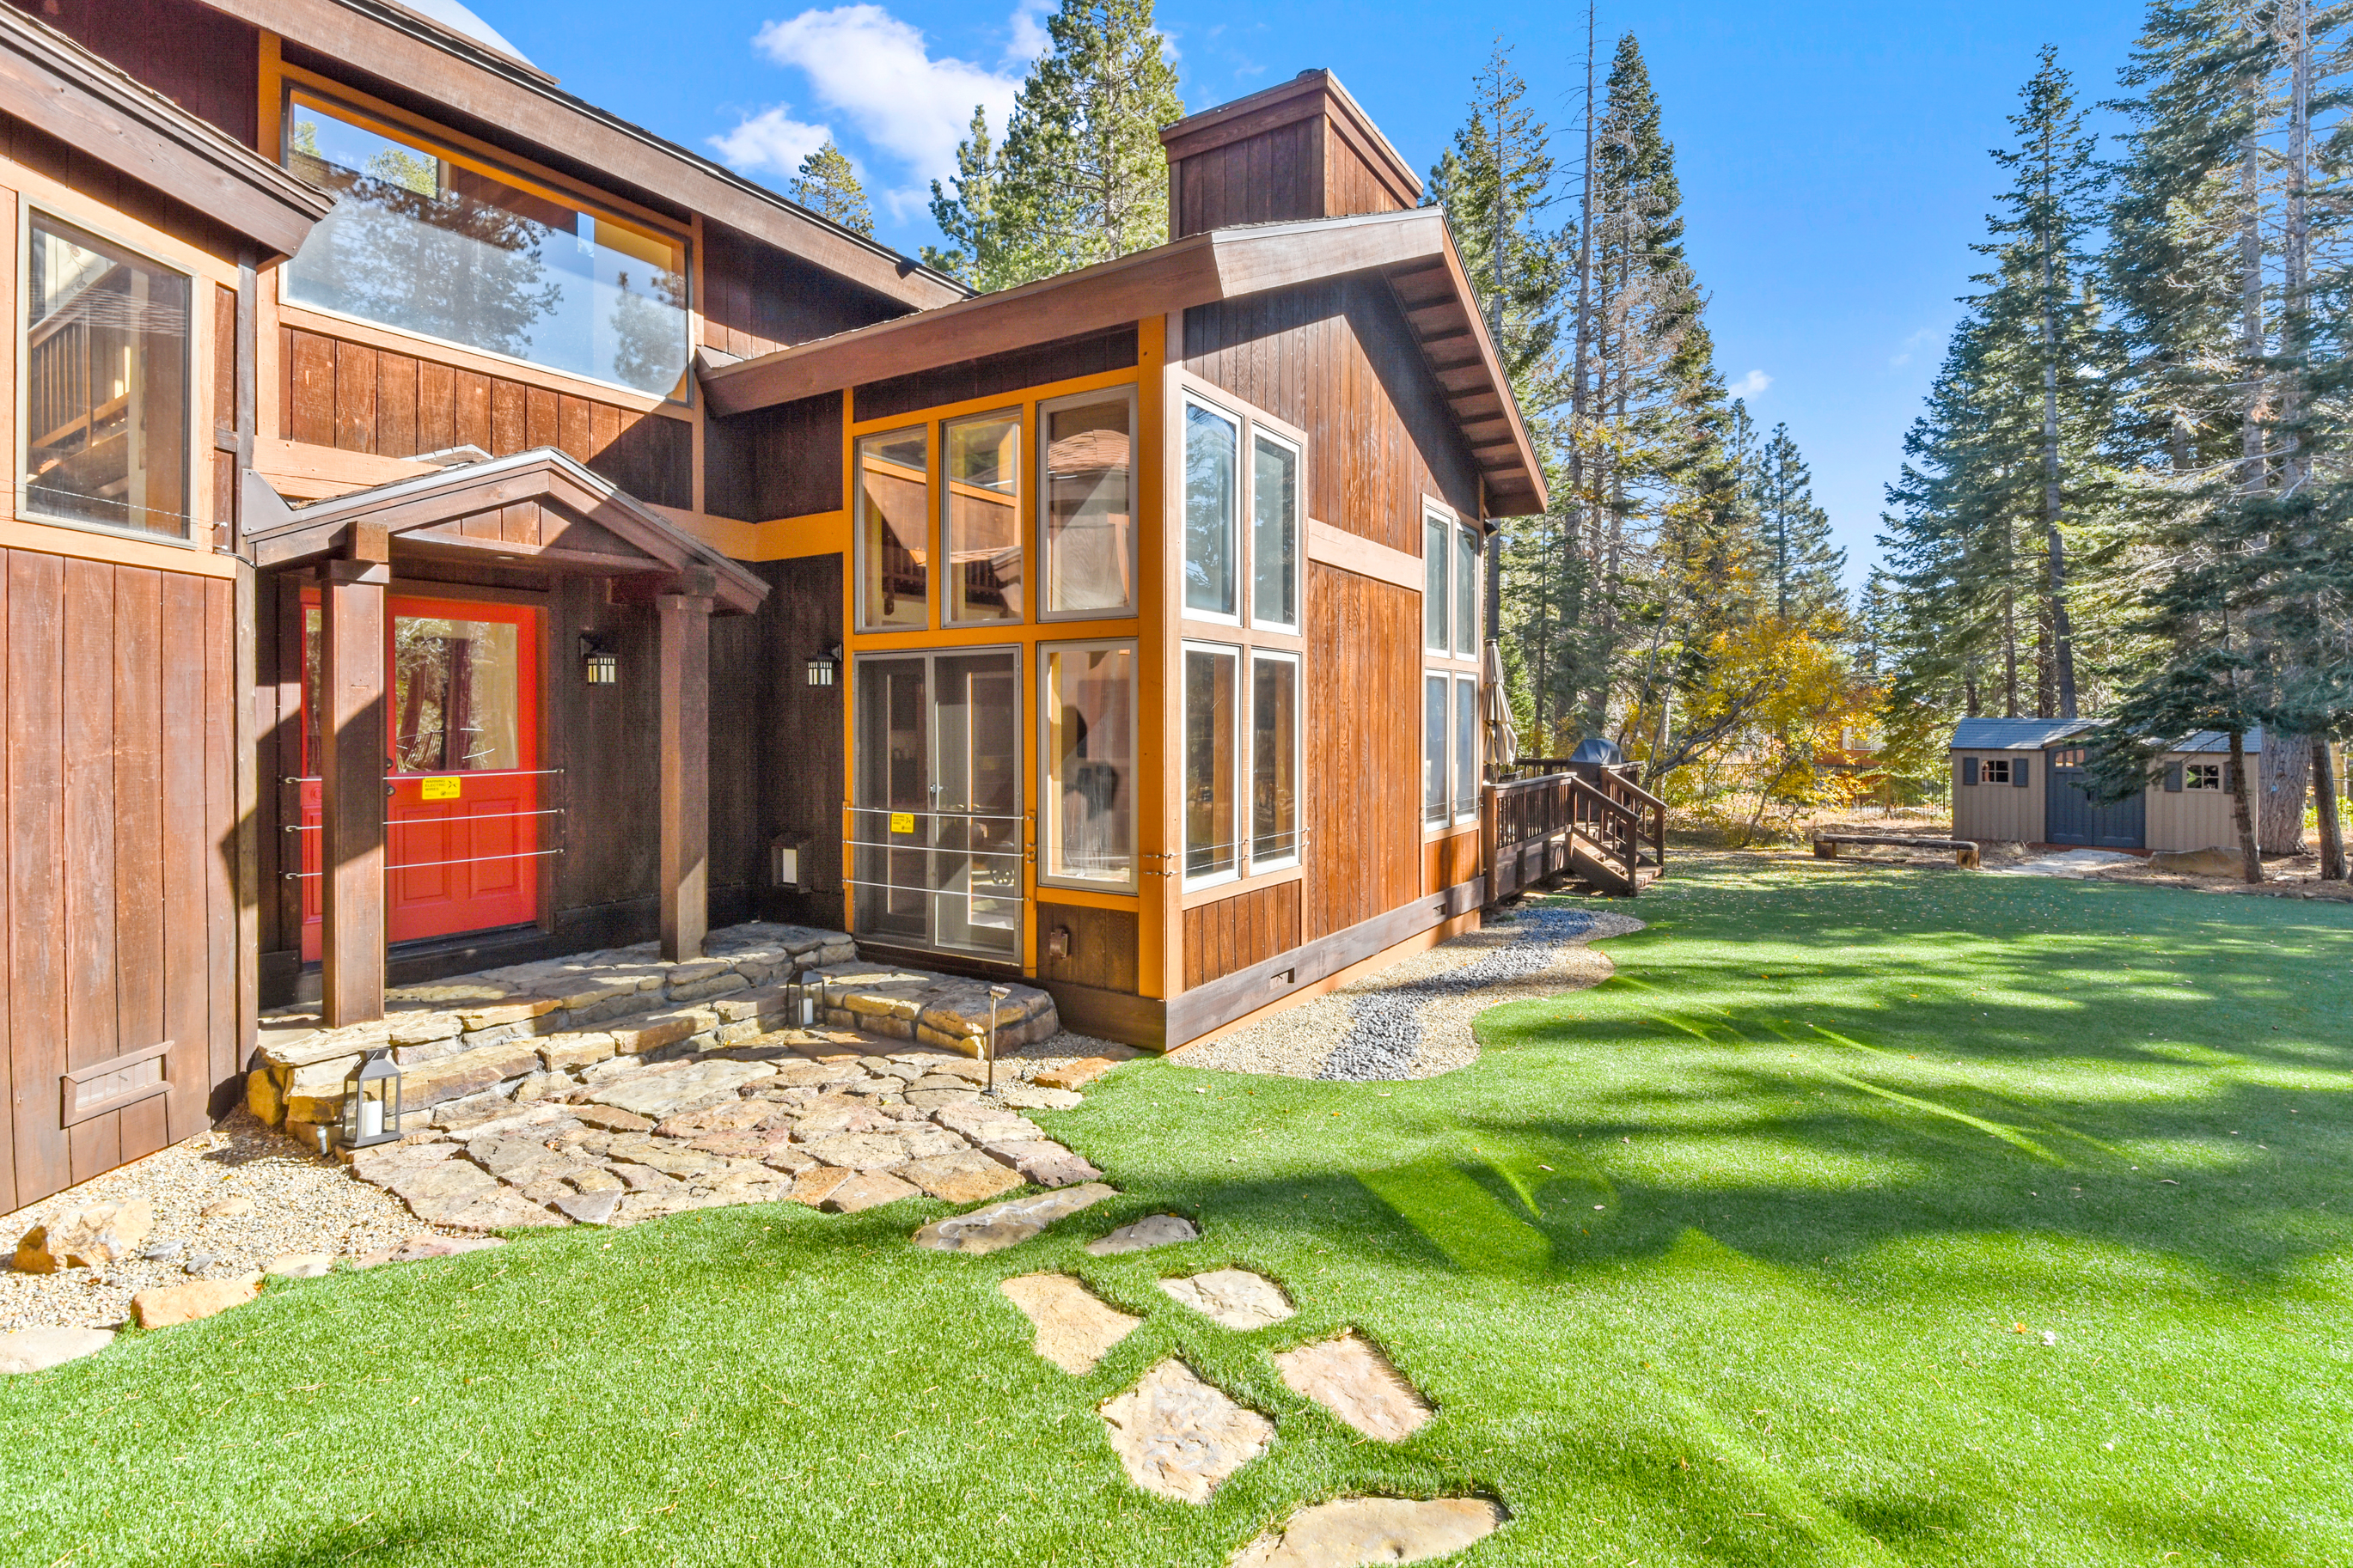 Tahoe City CA Vacation Rental Welcome to Sugar